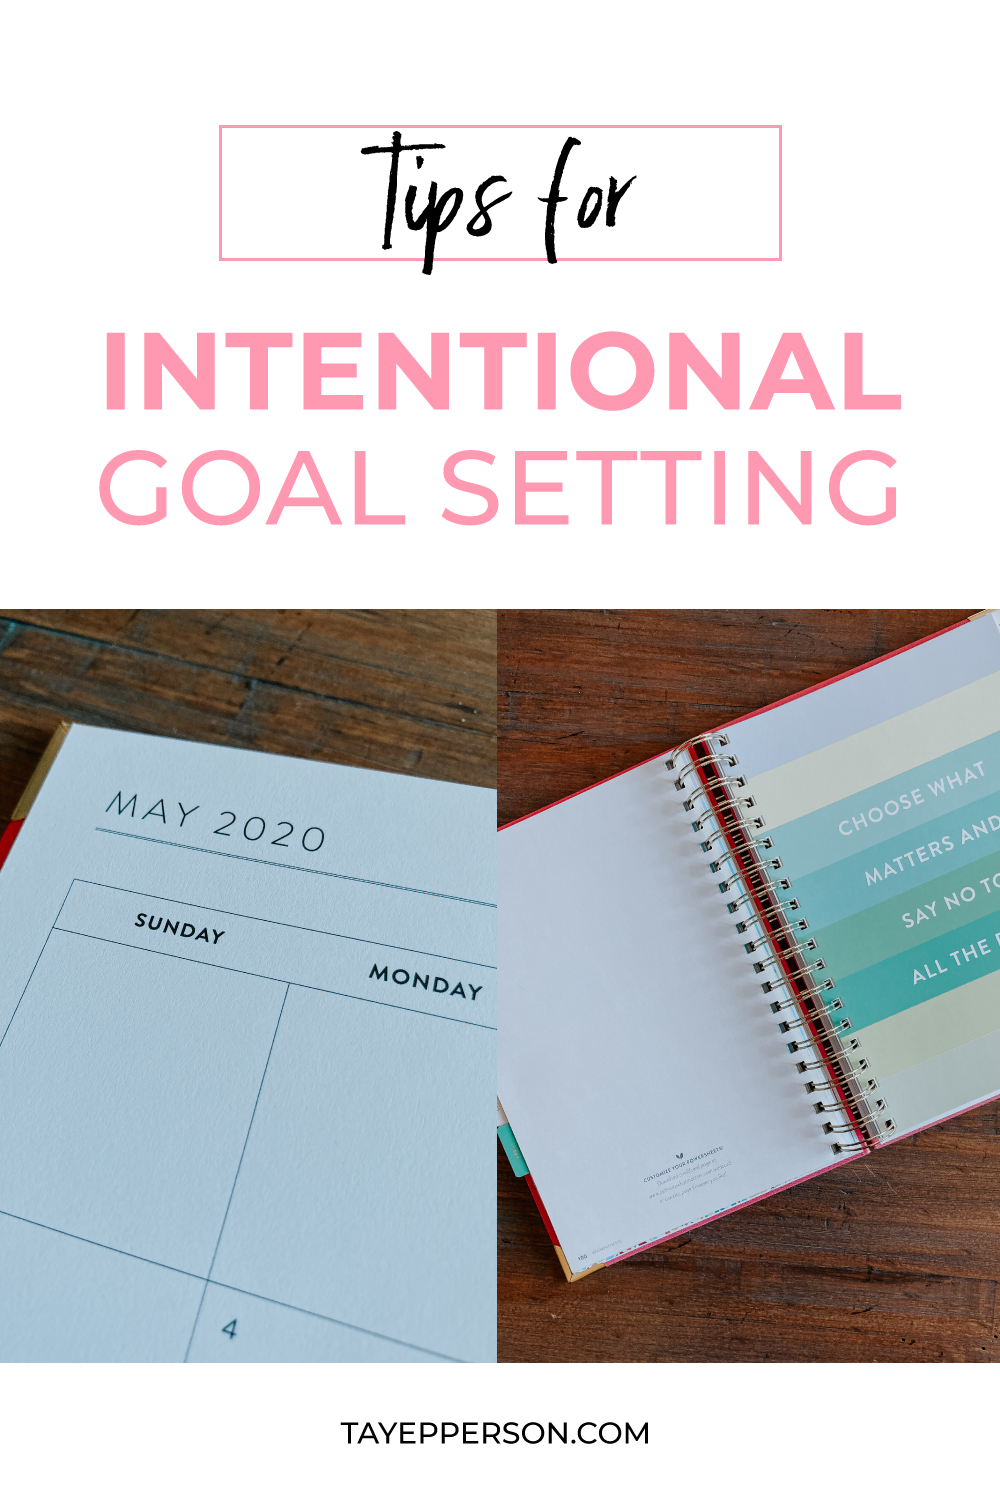 Intentional Goal Tips.png